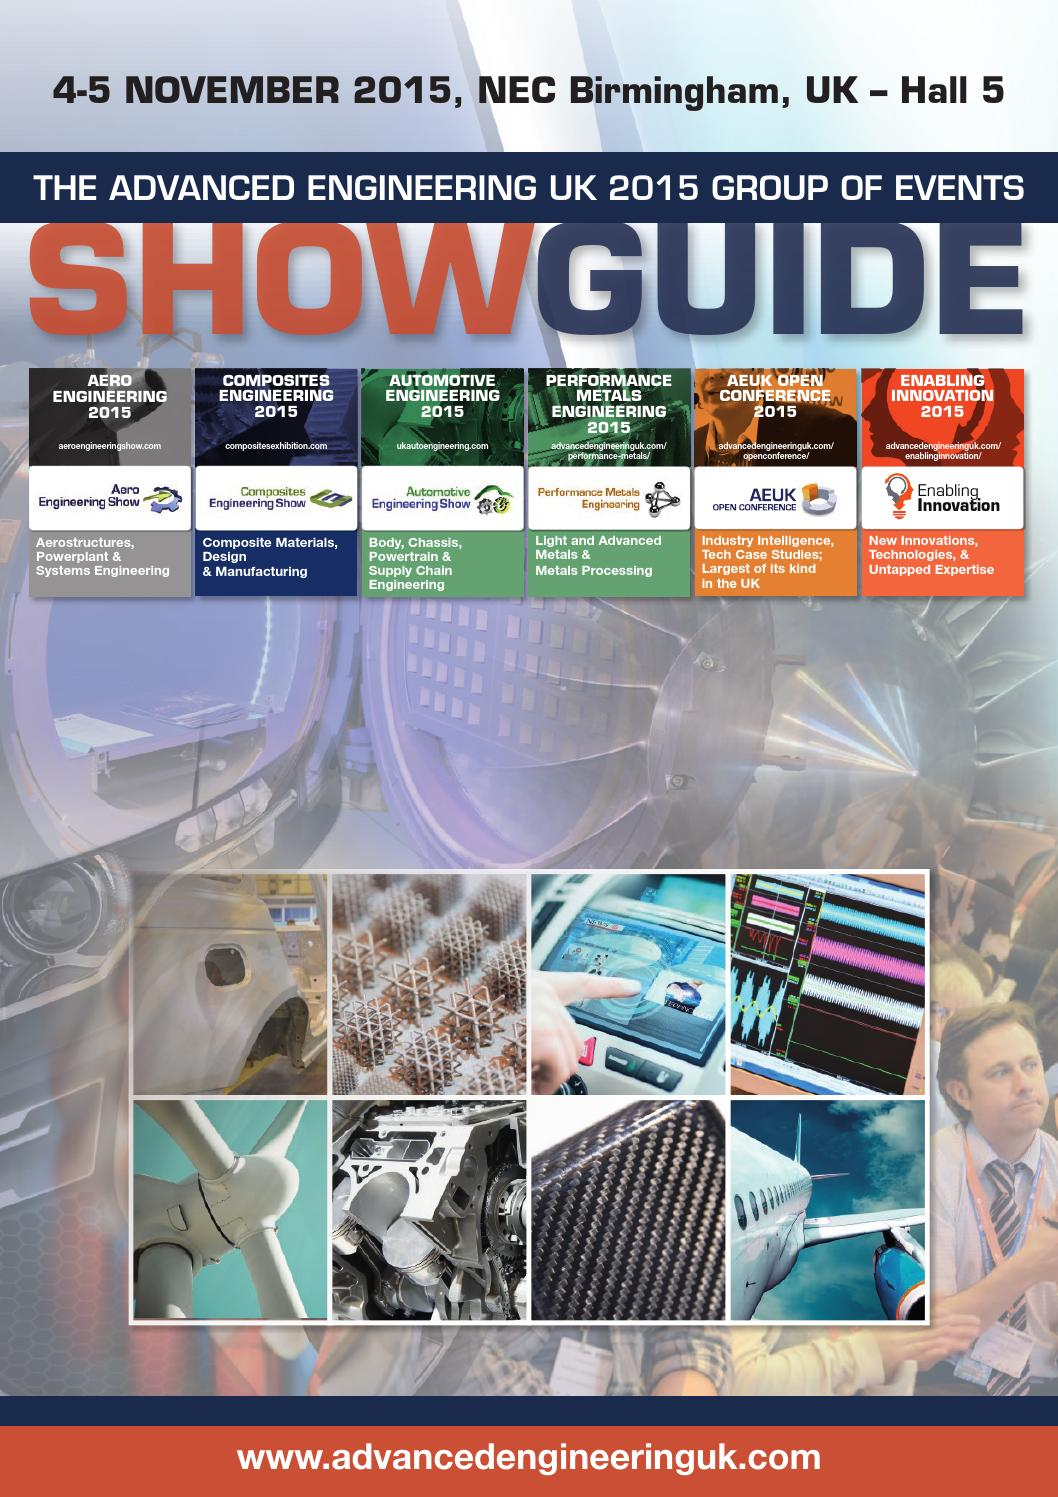 The Advanced Engineering UK 2015 Group of Events Show Guide